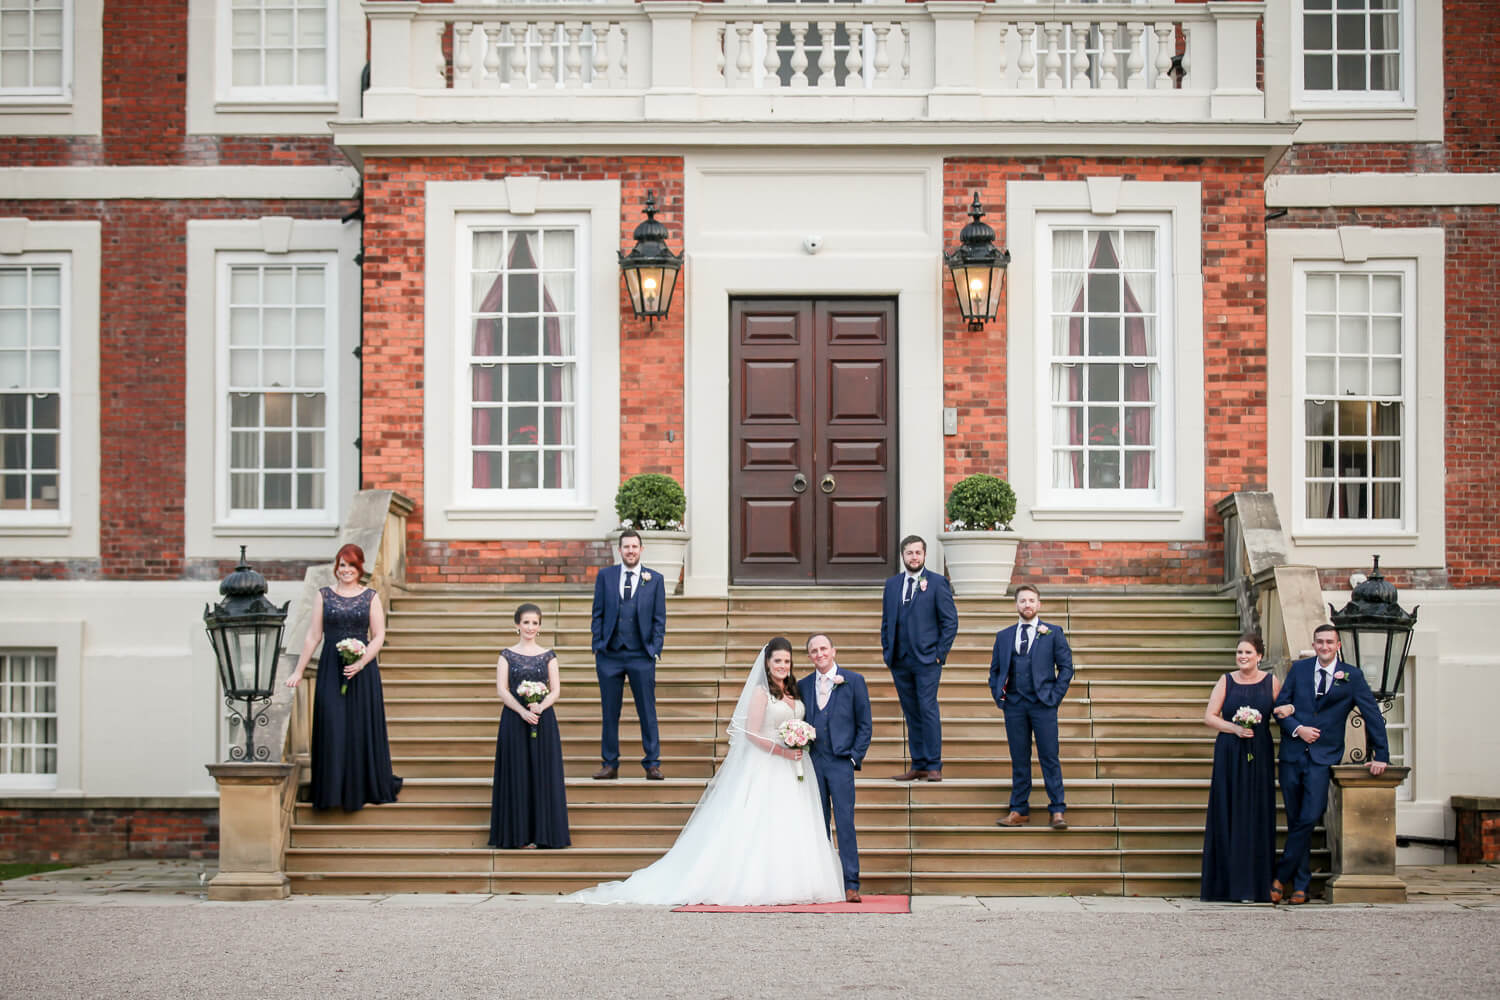 Knowsley Hall wedding photography bridal party on steps